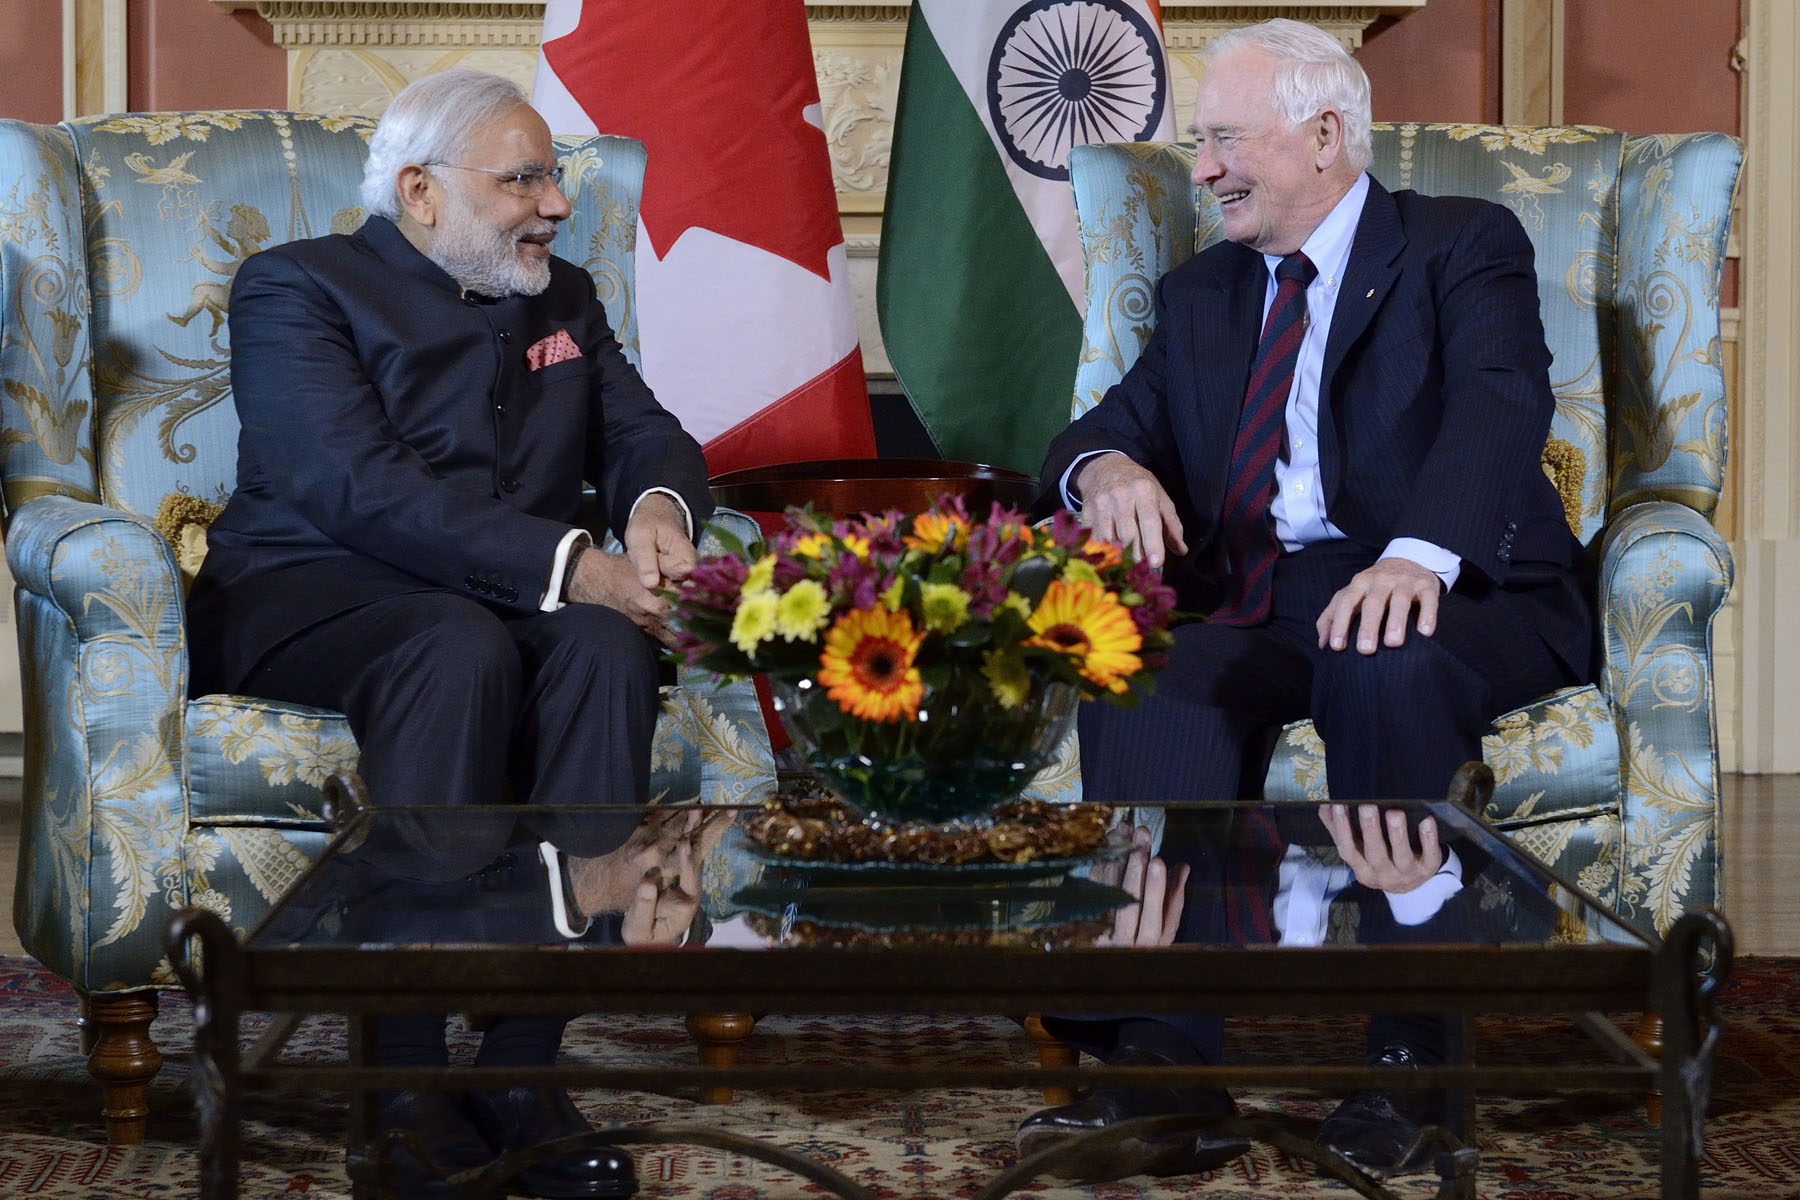 The Governor General conducted a State visit in India in 2014 that centred on the themes of innovation, entrepreneurship and education, with a special focus on the contributions of women and girls.